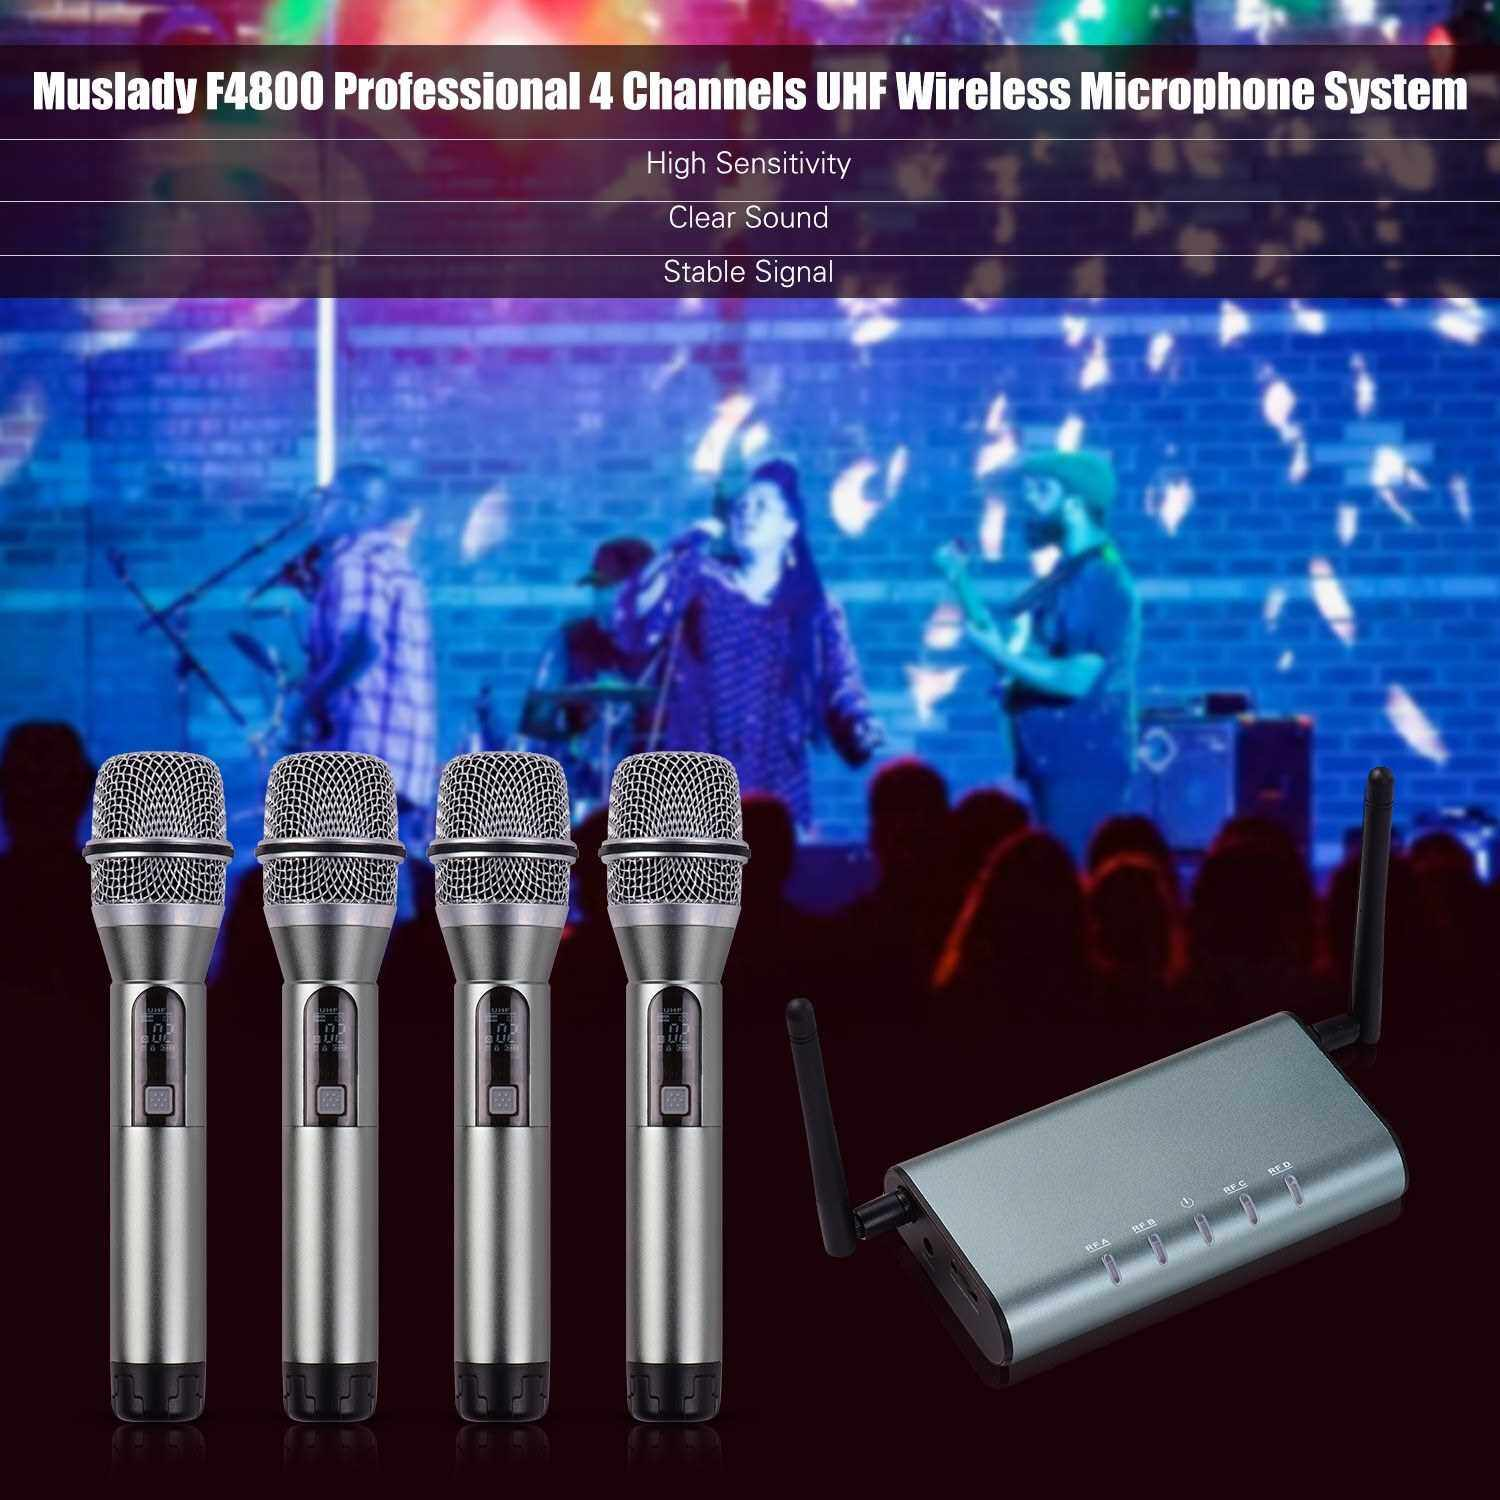 Muslady F4800 Professional 4 Channel UHF Wireless Microphone System 4 Handheld Microphones 1 Wireless Receiver 6.35mm Audio Cable LCD Display for Stage Karaoke Party Presentation Performance Public Address (Chrome)